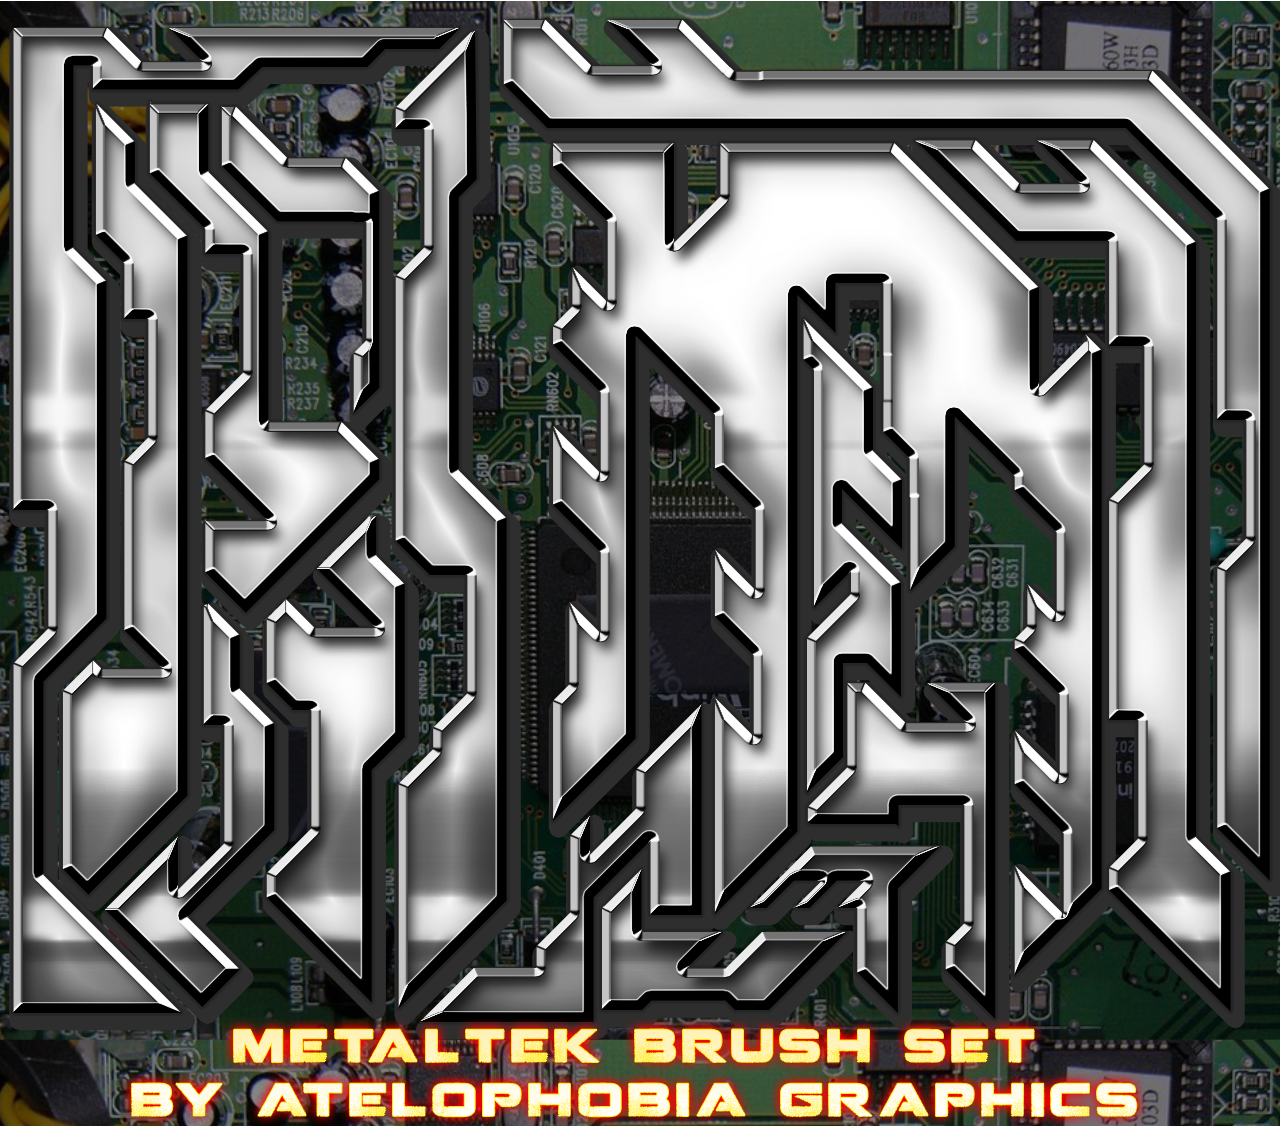 METALTEK PHOTOSHOP BRUSHES [FREE] by Atelophobia-Graphics